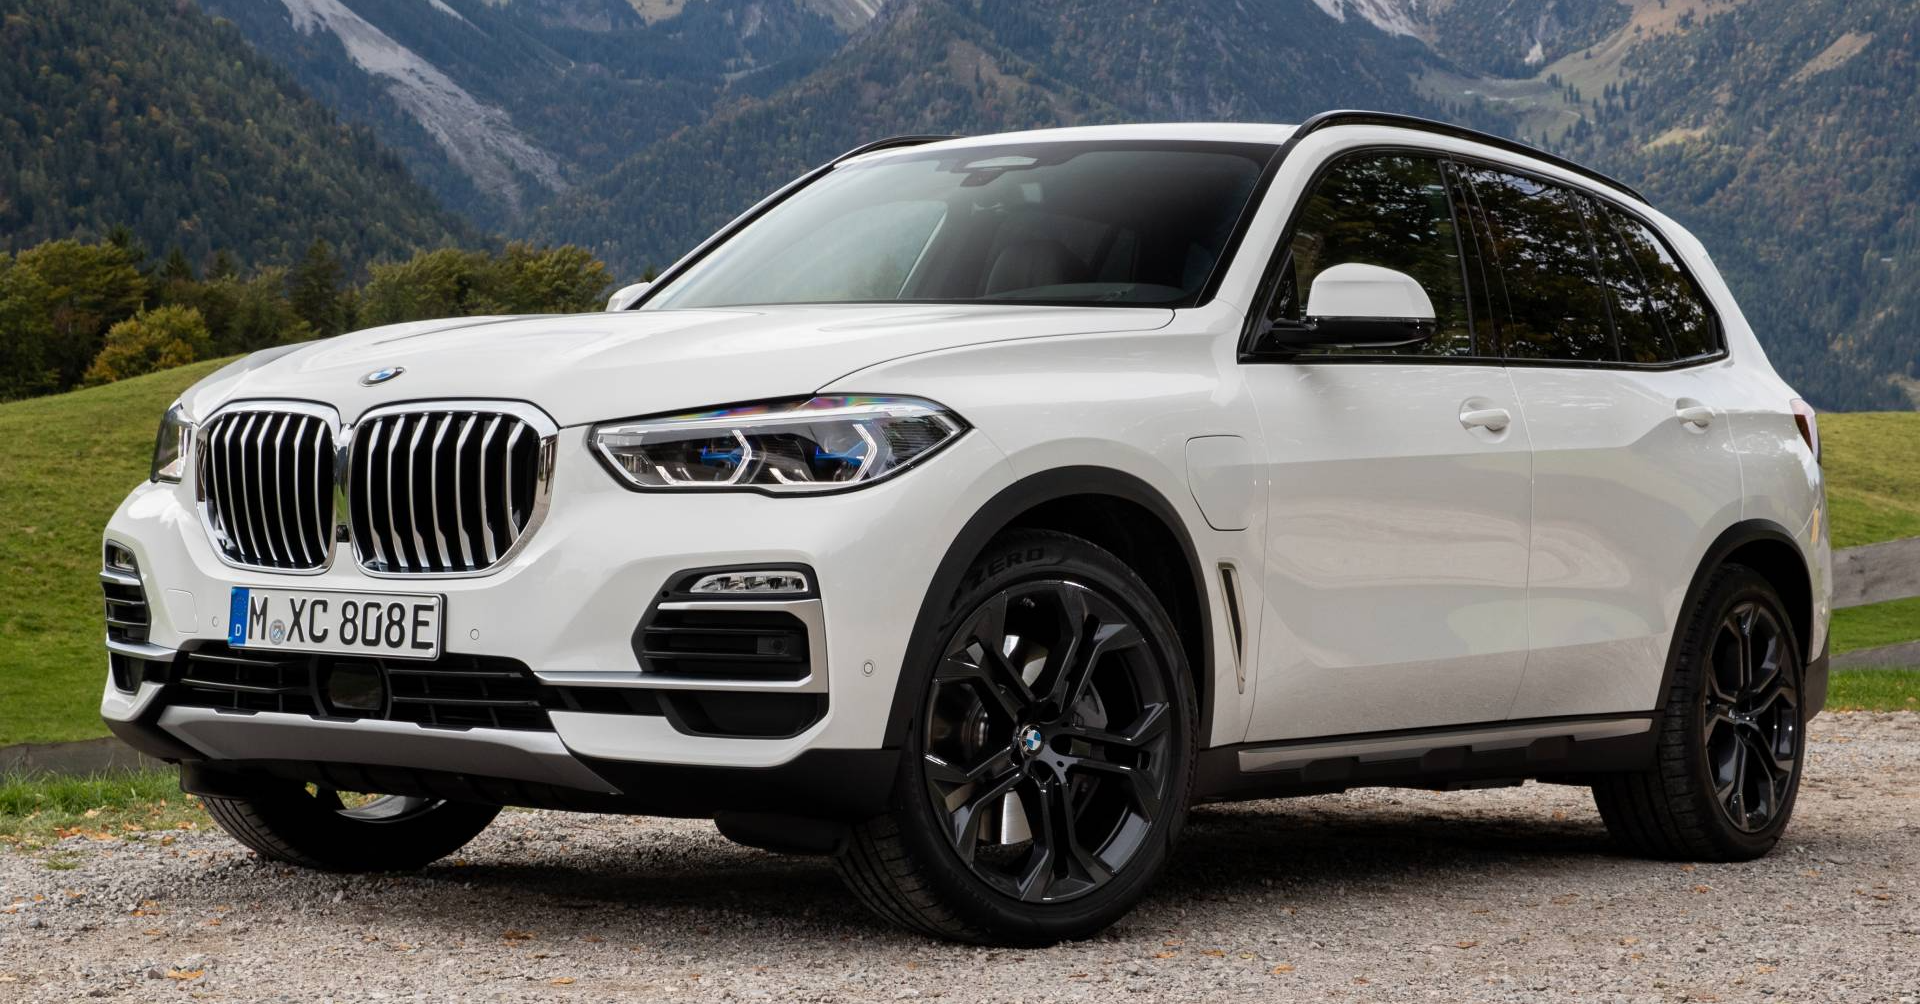 BMW X5: The Character You Want from BMW